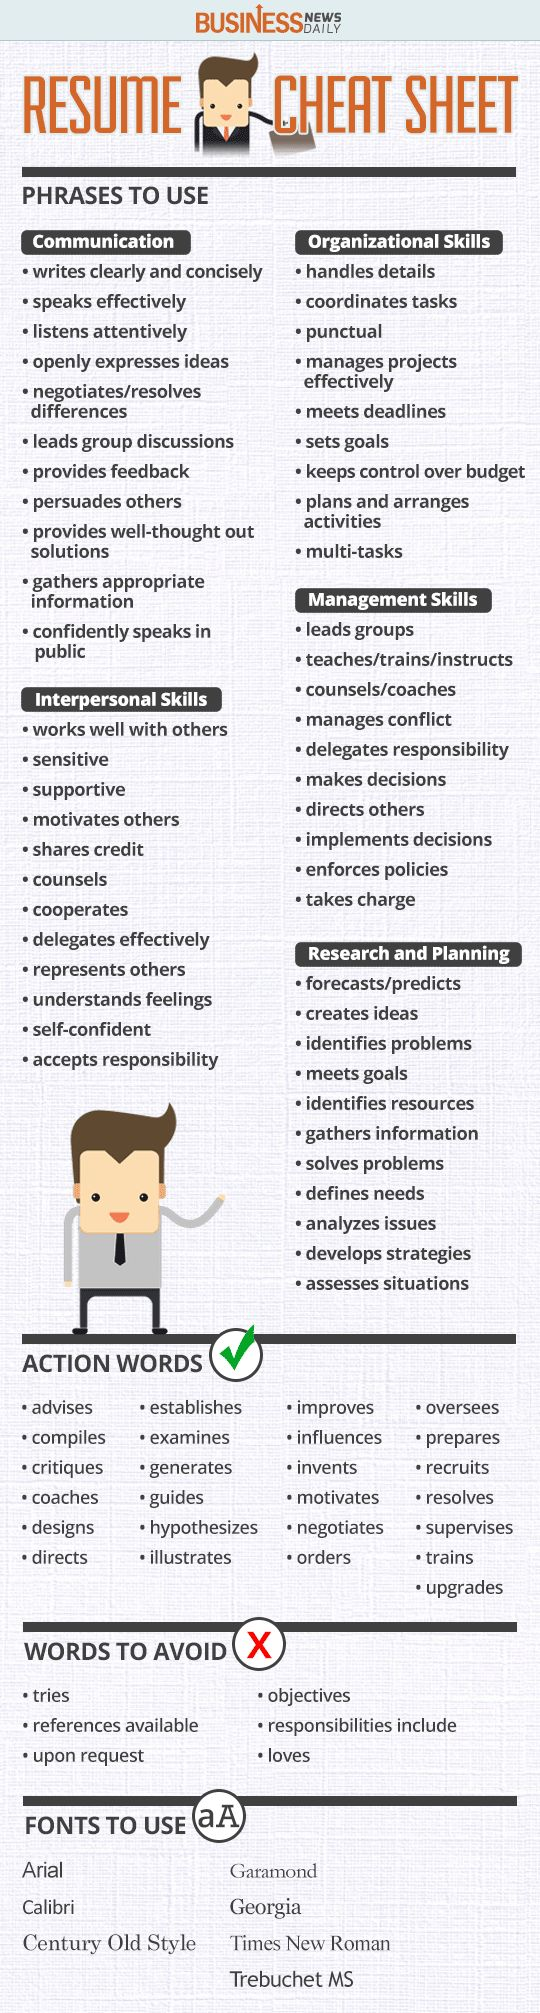 Opposenewapstandardsus  Prepossessing  Ideas About Resume On Pinterest  Cv Format Resume Cv And  With Extraordinary Resume Cheat Sheet Infographic Andrews Almost Done With A Complete Unit On Employment Which With Attractive Acting Resume Template Also What To Put On A Resume In Addition Skills To List On Resume And Objective On A Resume As Well As Best Resume Template Additionally Sample Resume Objectives From Pinterestcom With Opposenewapstandardsus  Extraordinary  Ideas About Resume On Pinterest  Cv Format Resume Cv And  With Attractive Resume Cheat Sheet Infographic Andrews Almost Done With A Complete Unit On Employment Which And Prepossessing Acting Resume Template Also What To Put On A Resume In Addition Skills To List On Resume From Pinterestcom